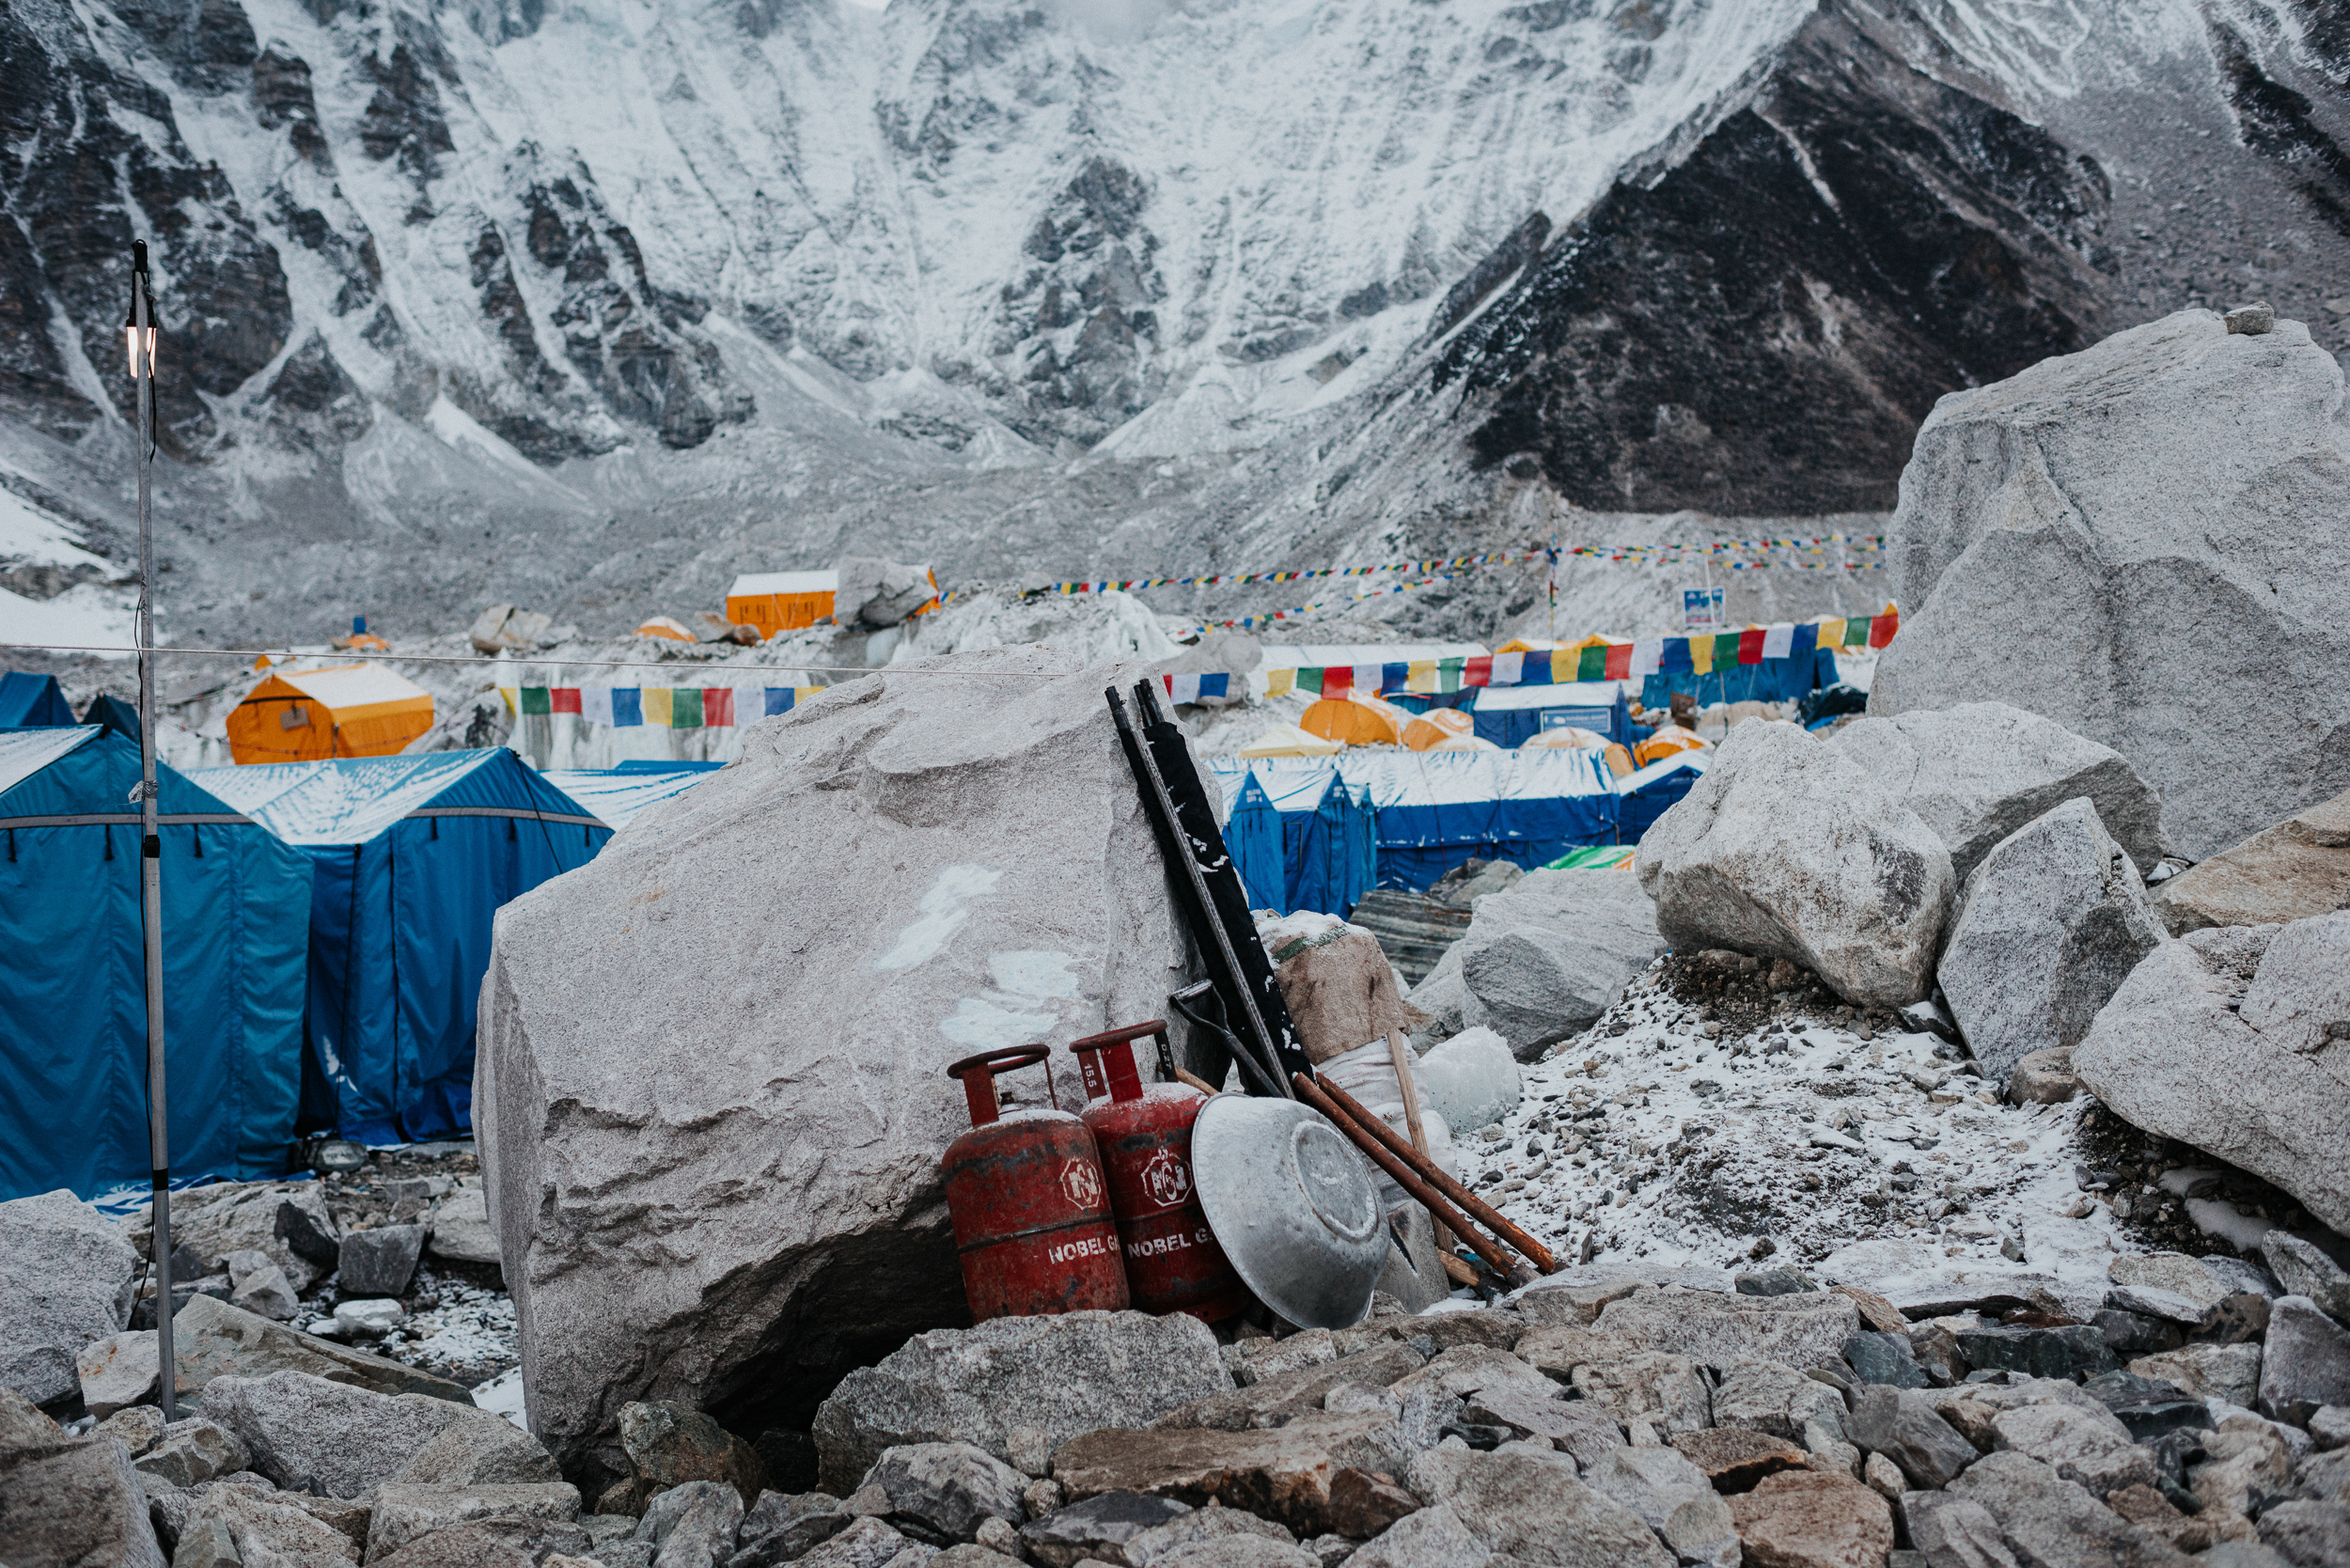 Nepal_EverestBaseCamp_2019_TaraShupe_Photography_DSC_4330.jpg